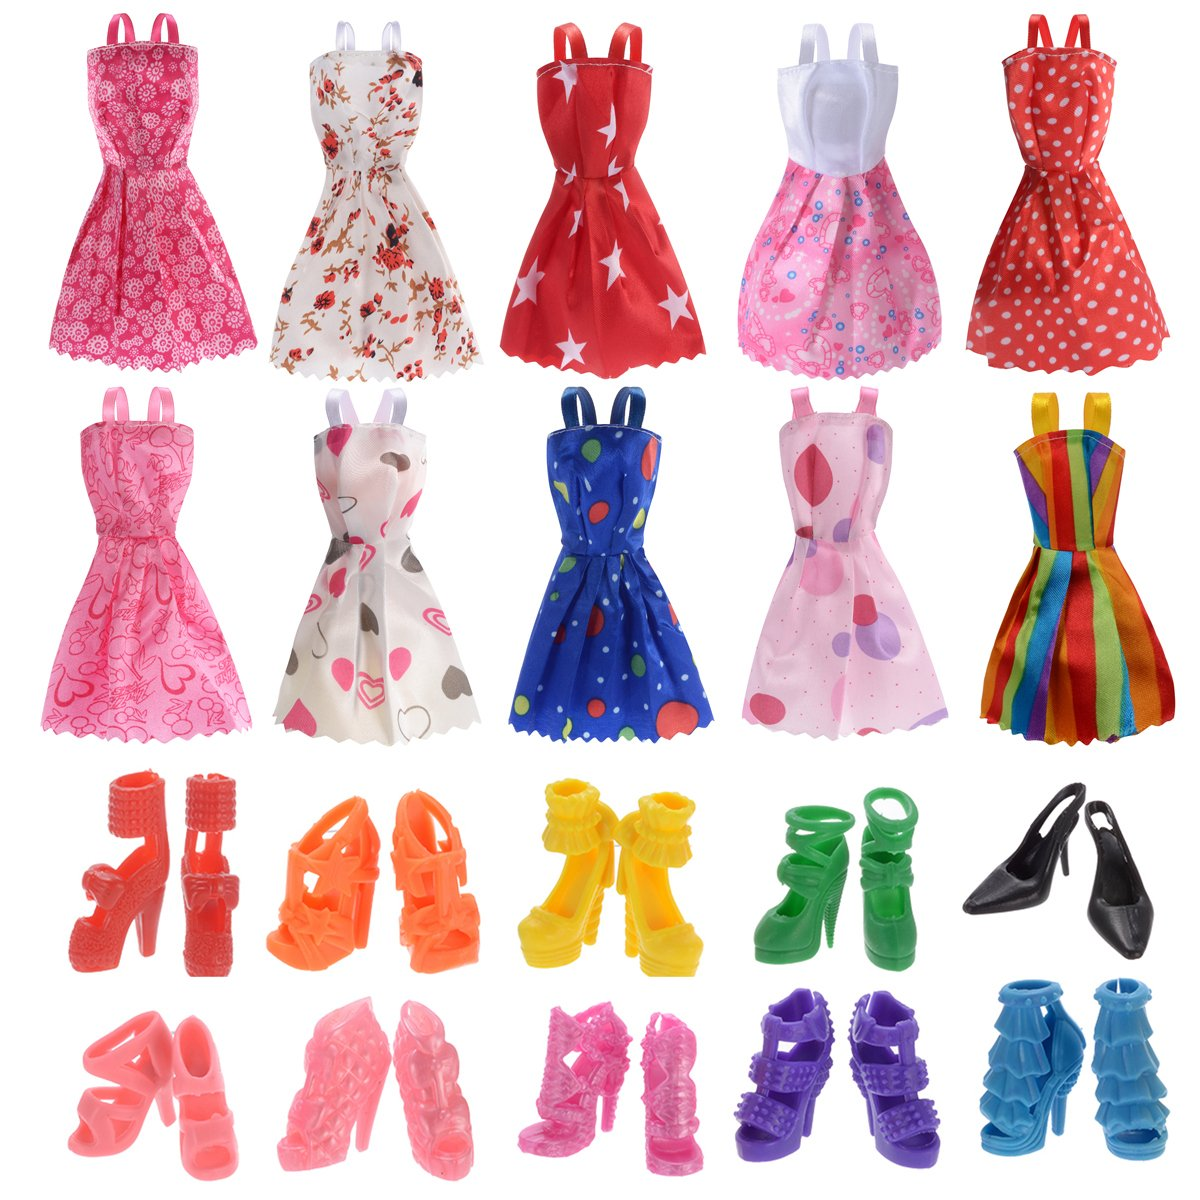 10 Pack Barbie Doll Clothes Party Gown Outfits with 10 Pairs Doll Shoes for Girl's Birthday Christmas Gift Generic